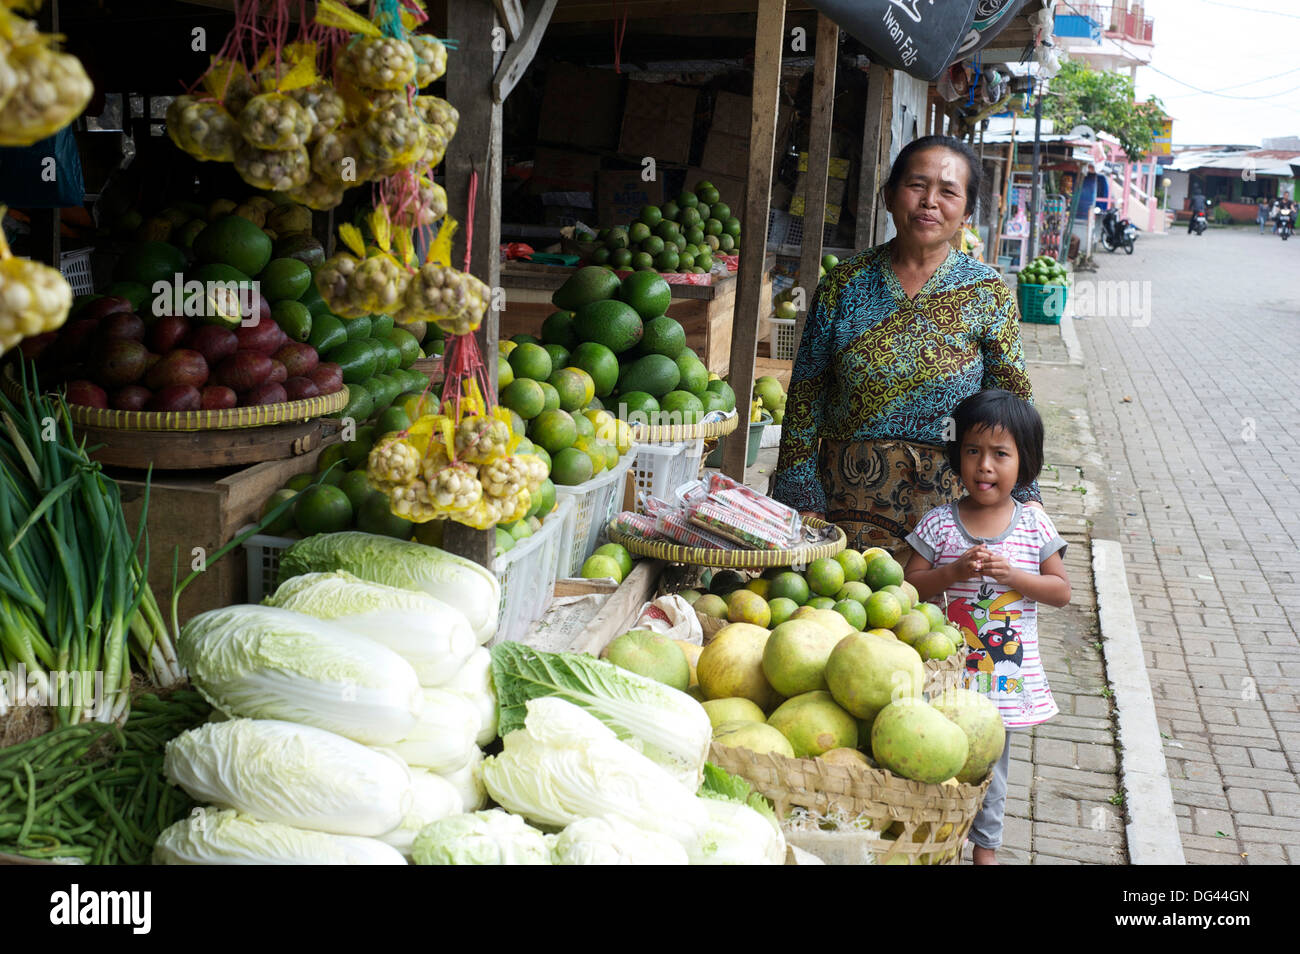 Javanese stall holder and her daughter by their vegetable stall in the local market, Solo river valley, Java, Indonesia - Stock Image